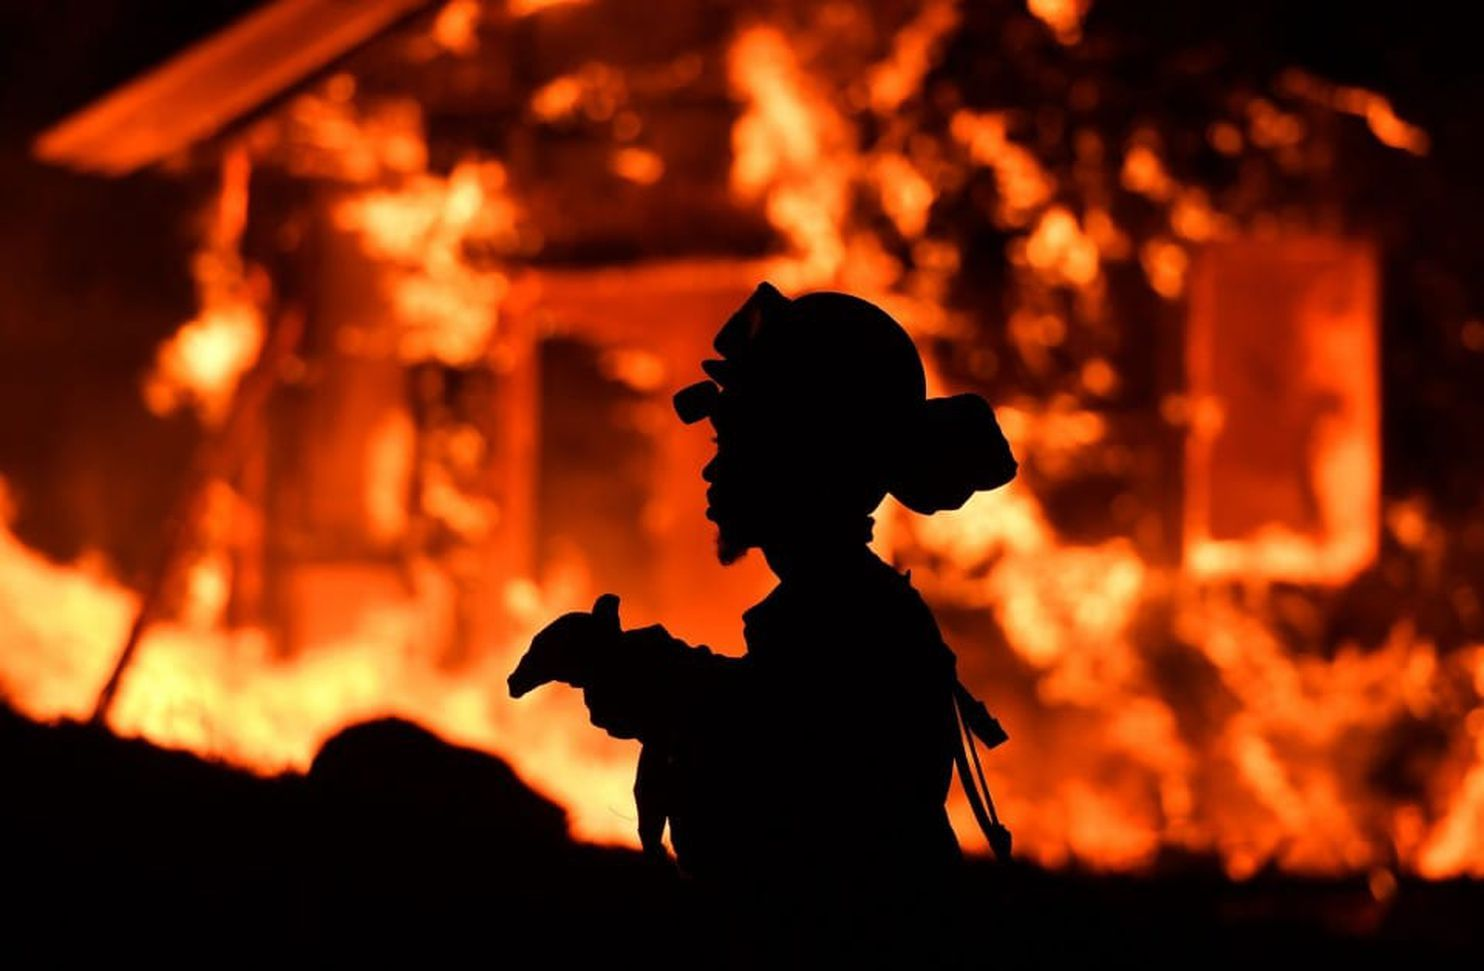 From the Washington Post: A firefighter monitors flames as a house burns near Napa. (Josh Edelson/AFP/Getty Images)